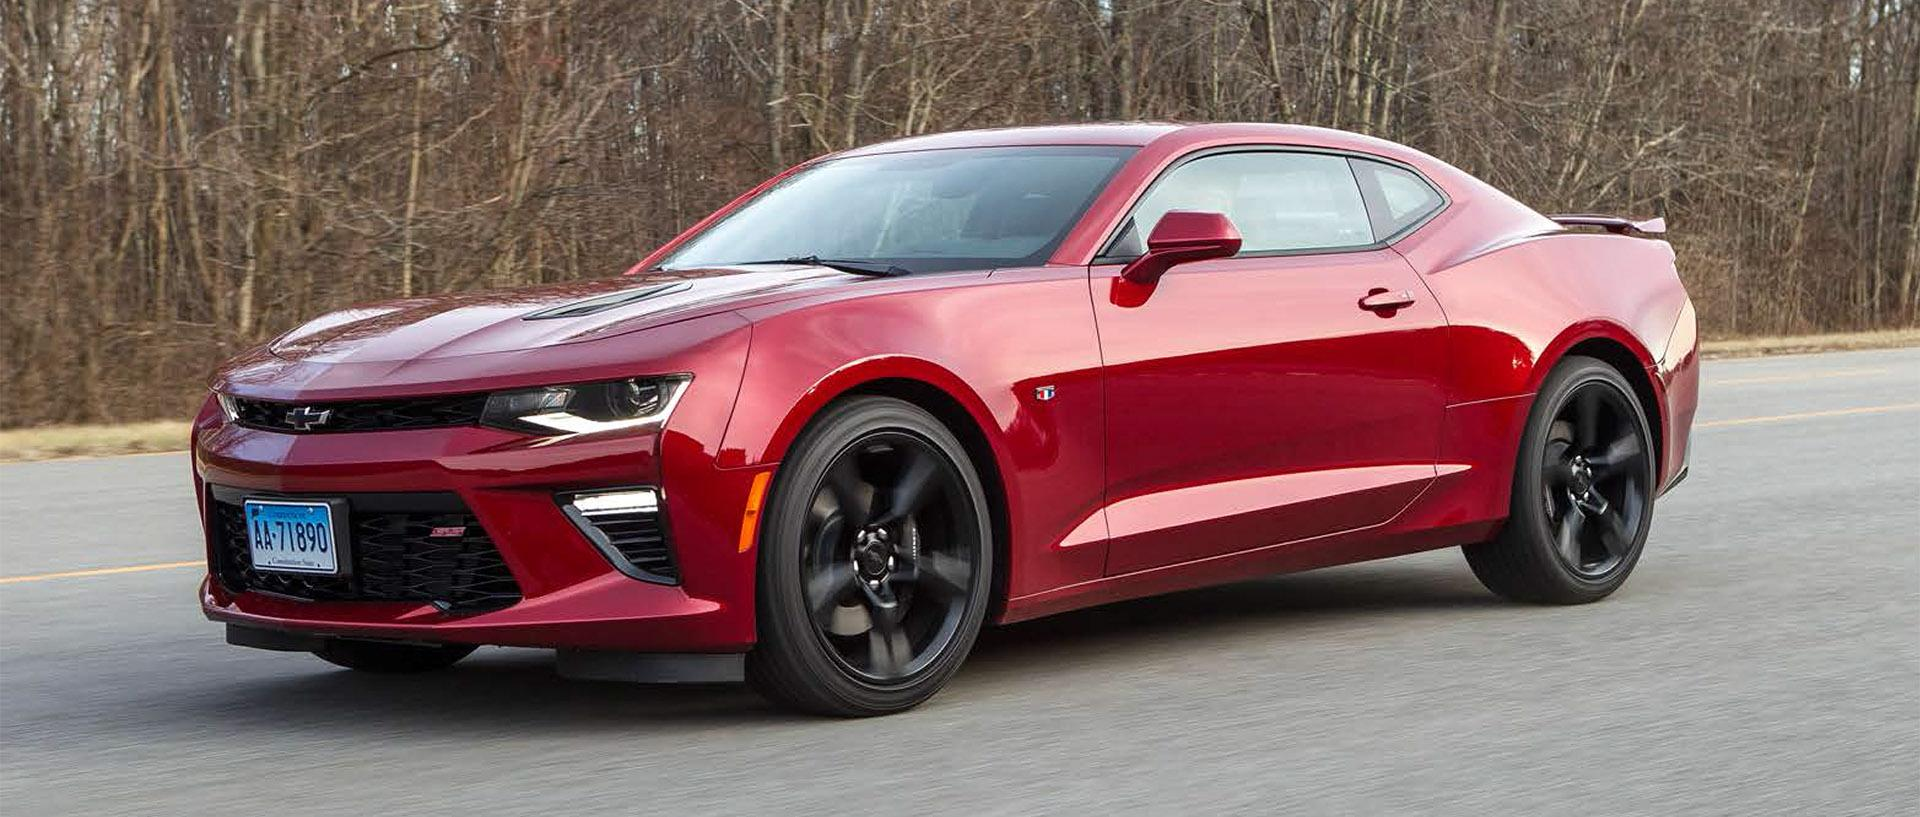 2016 chevrolet camaro ss proves a dynamic delight. Black Bedroom Furniture Sets. Home Design Ideas